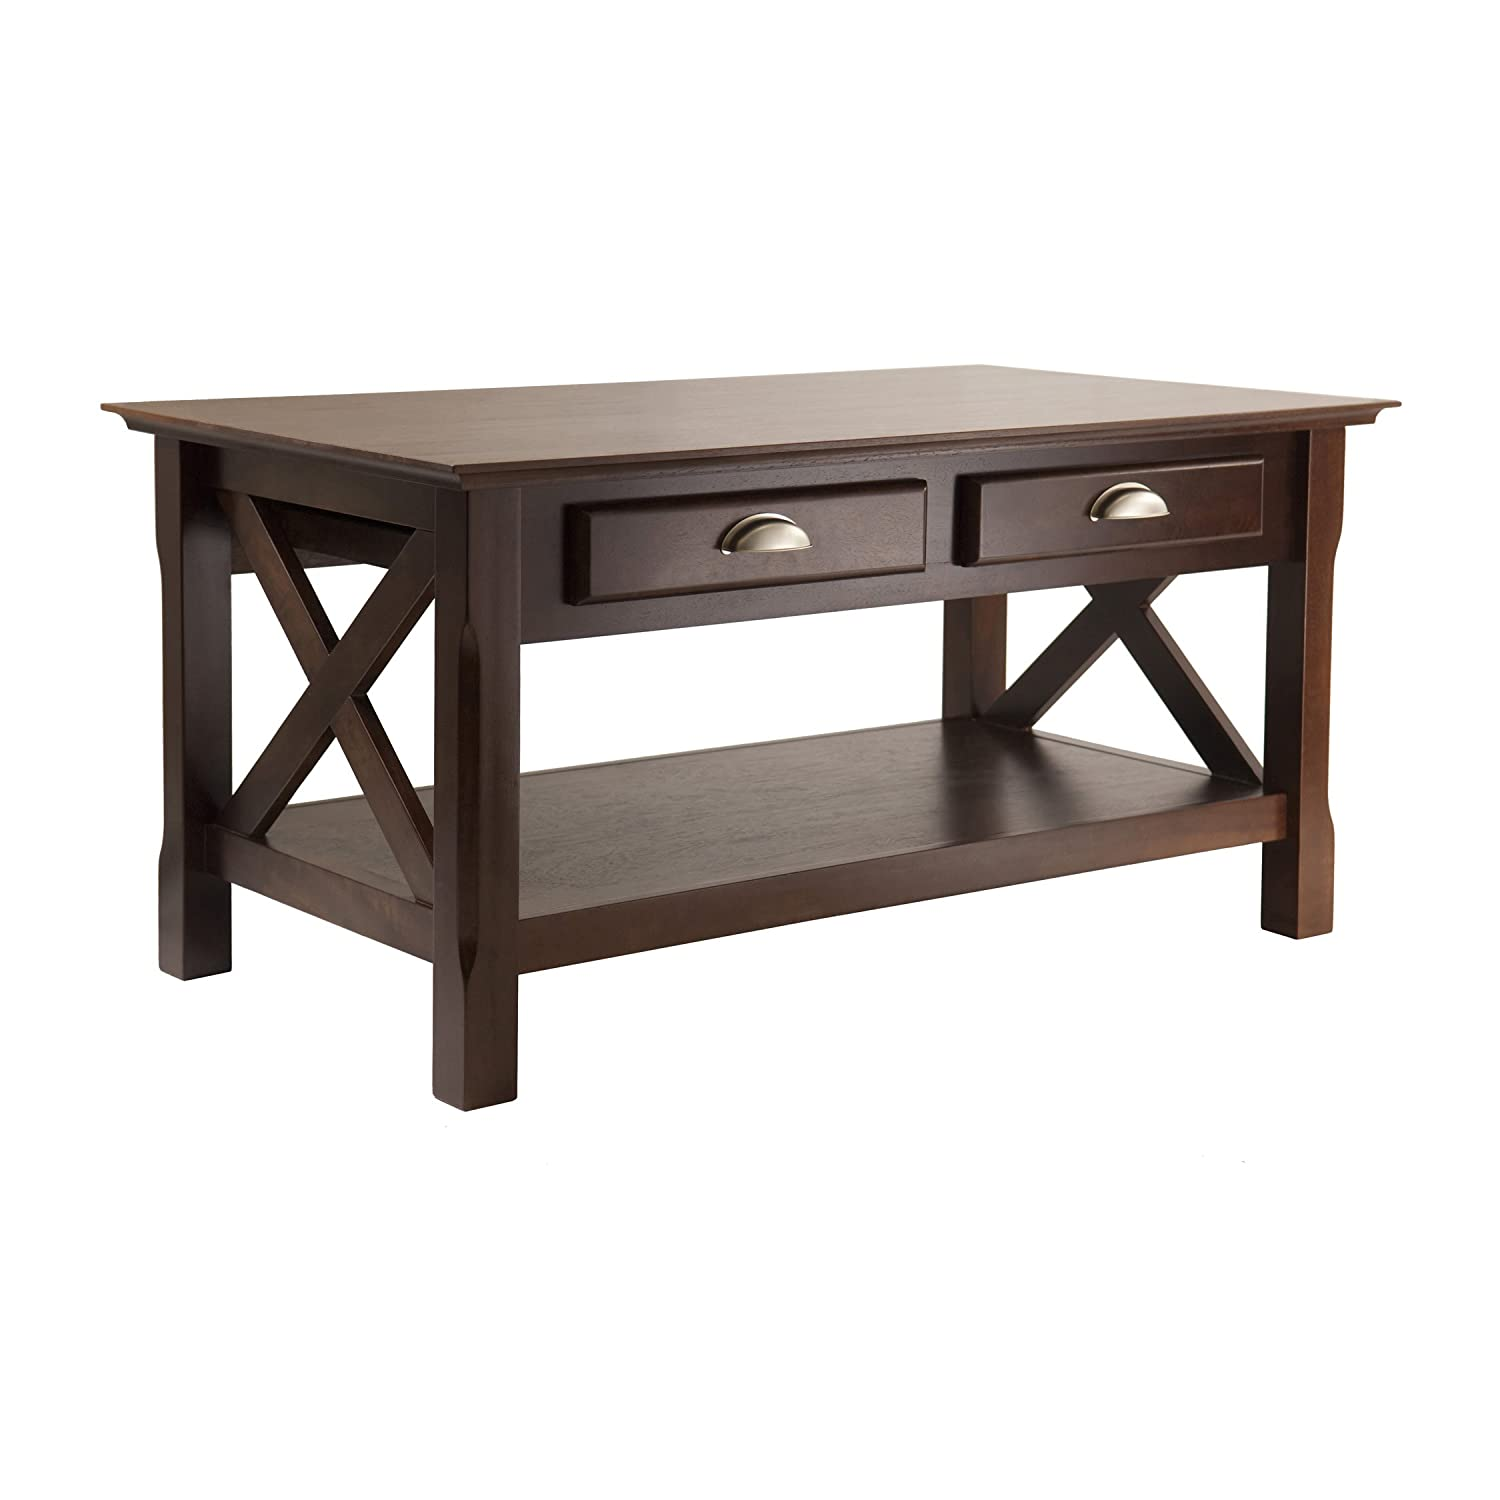 Winsome Wood Xola Coffee Table, Cappuccino Finish 40538